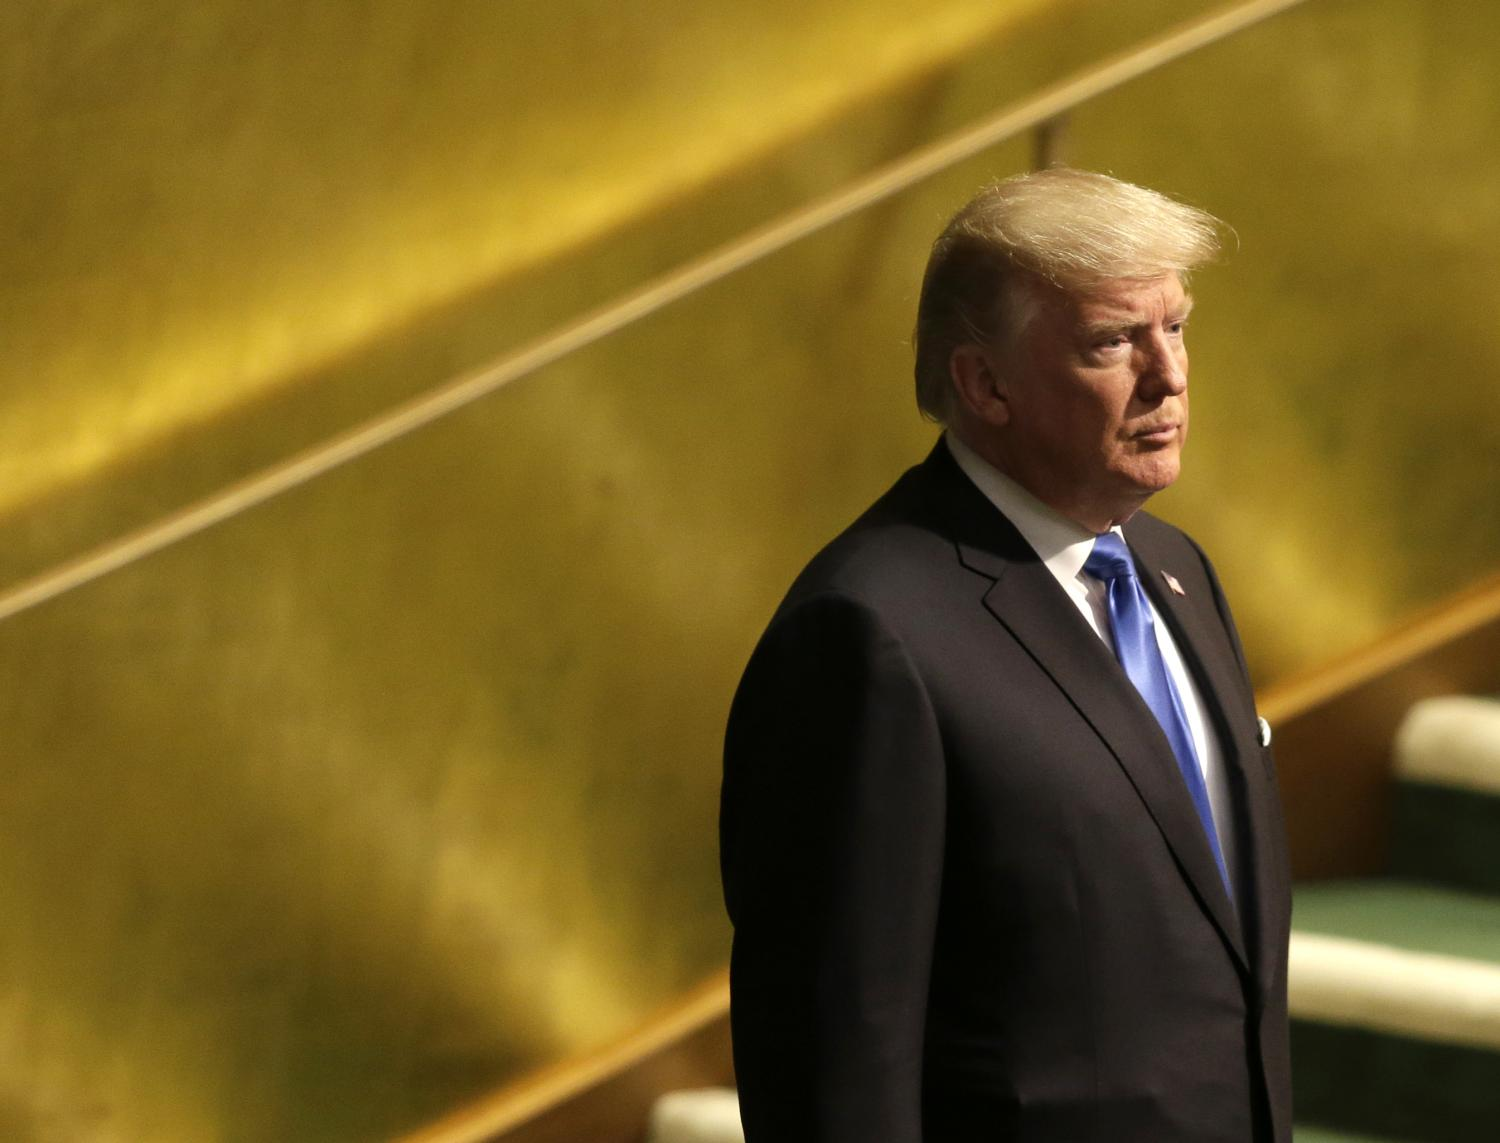 United States President Donald Trump prepares to speak during the United Nations General Assembly at U.N. headquarters Sept. 19, 2017. (AP)